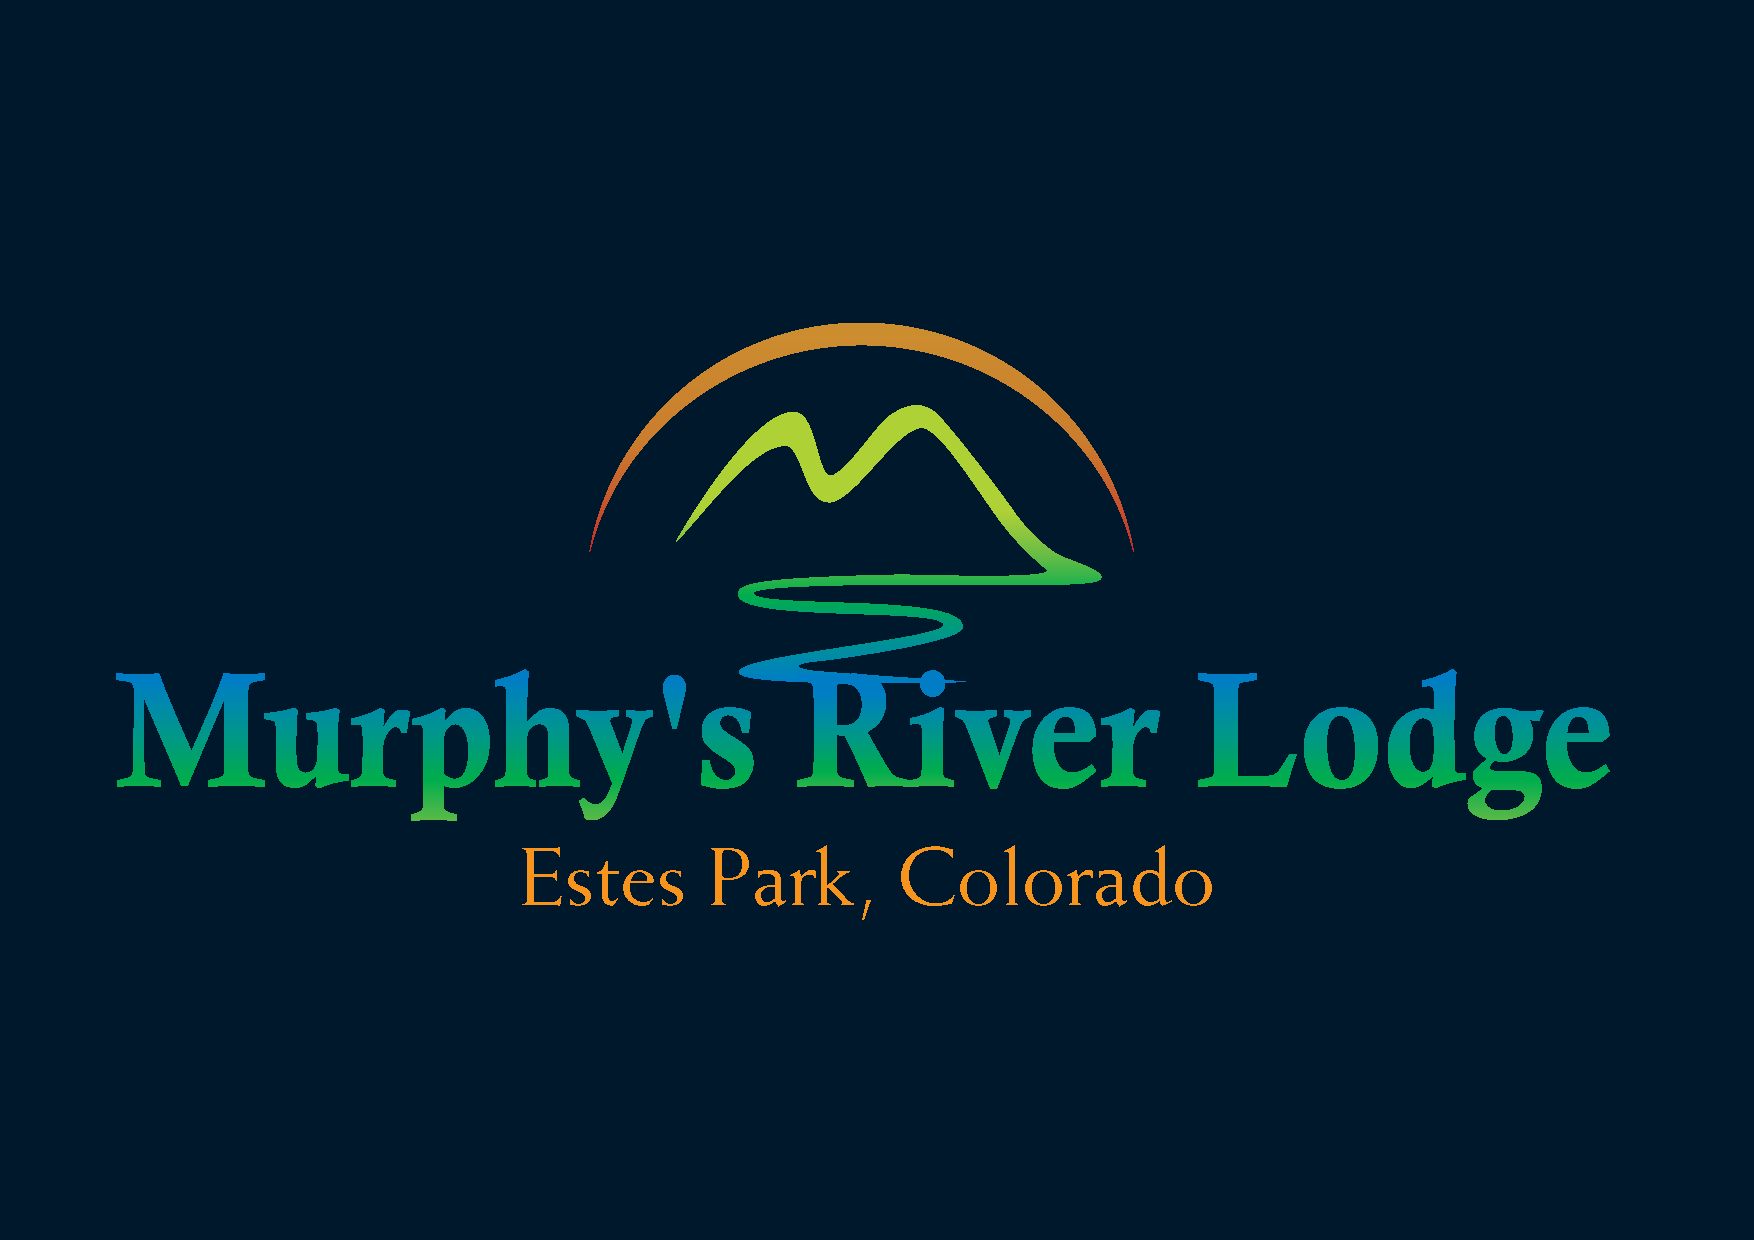 Murphy's River Lodge, Estes Park Colorado - Hospitality Industry Logo